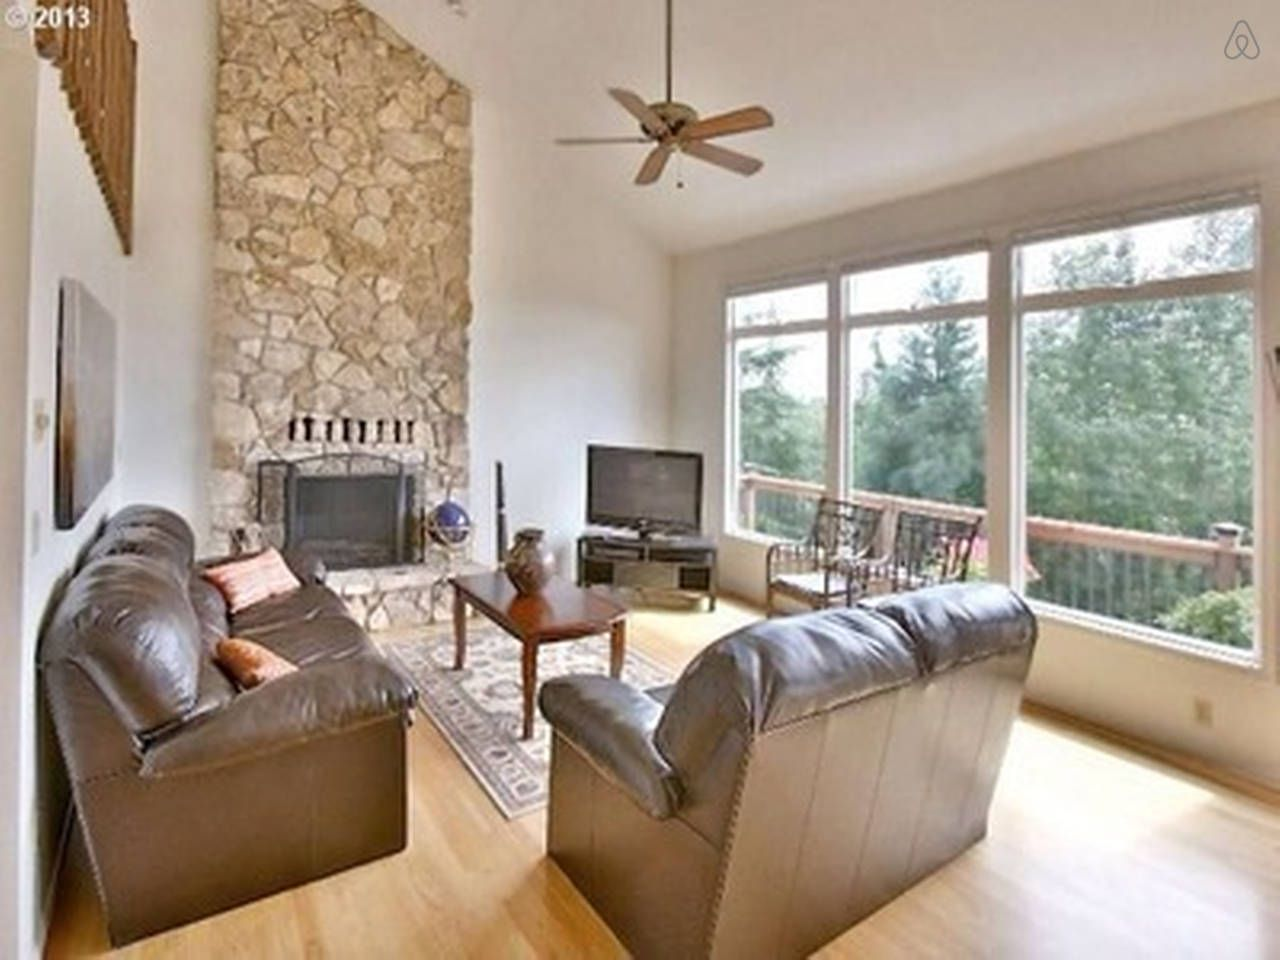 X Large 4 bedroom 2.5 bath, VIEW! - vacation rental in ...